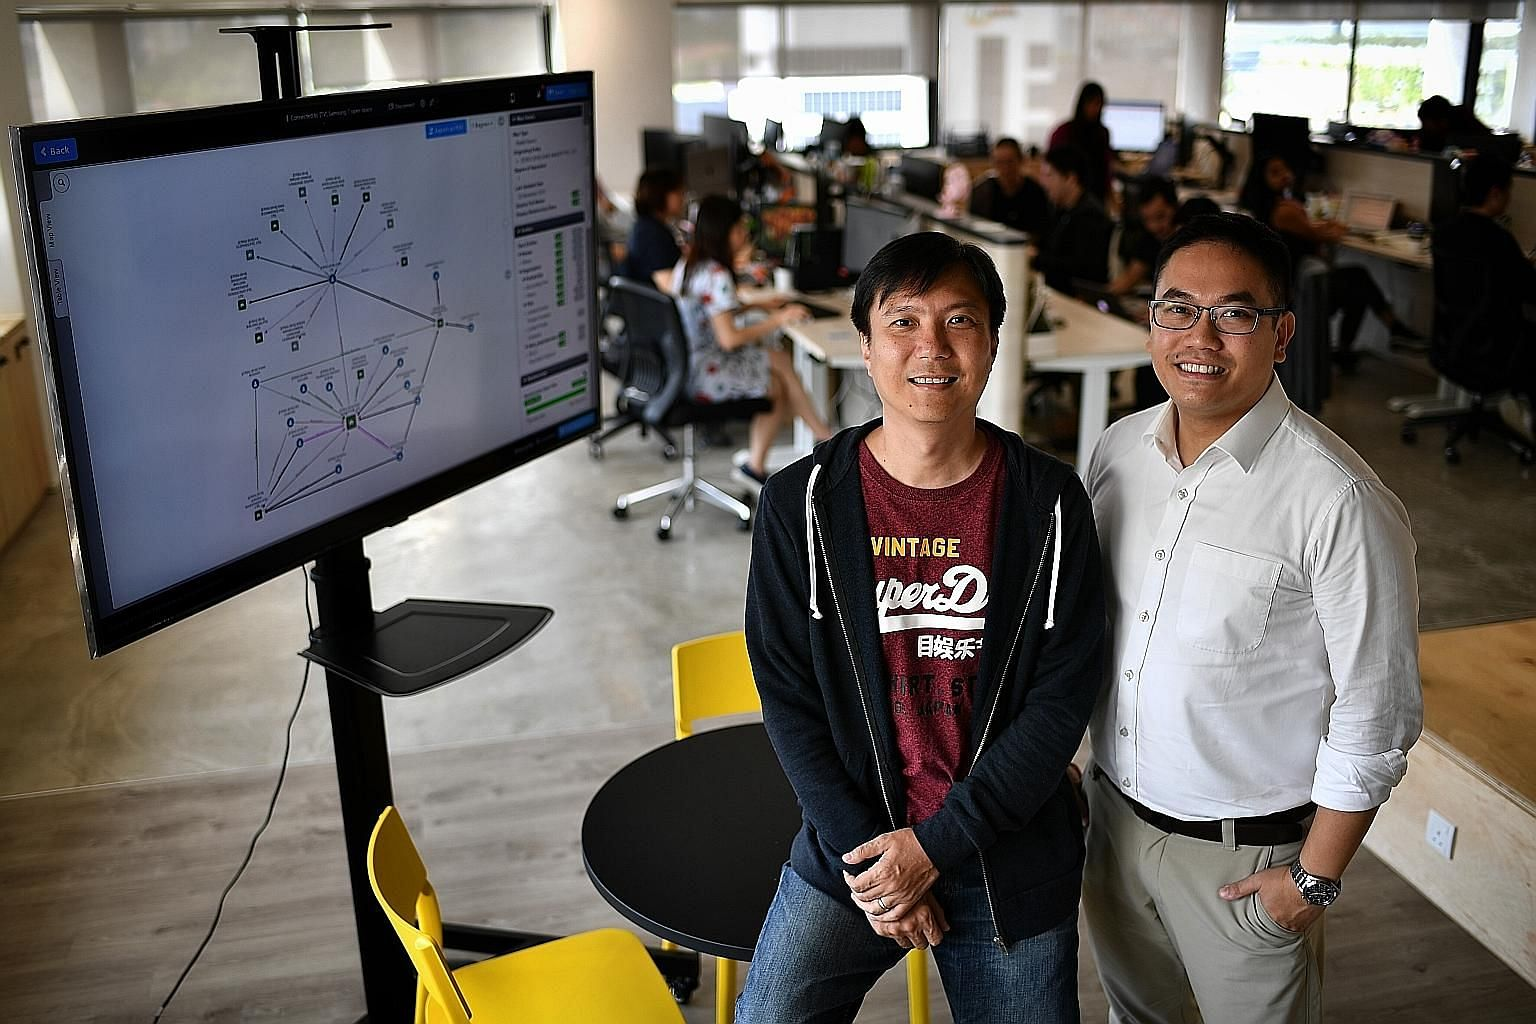 Mr Charles Poon and Mr Daryl Neo, co-founders of DC Frontiers, which has grown its number of government clients from one to 20 within two years of being accredited.